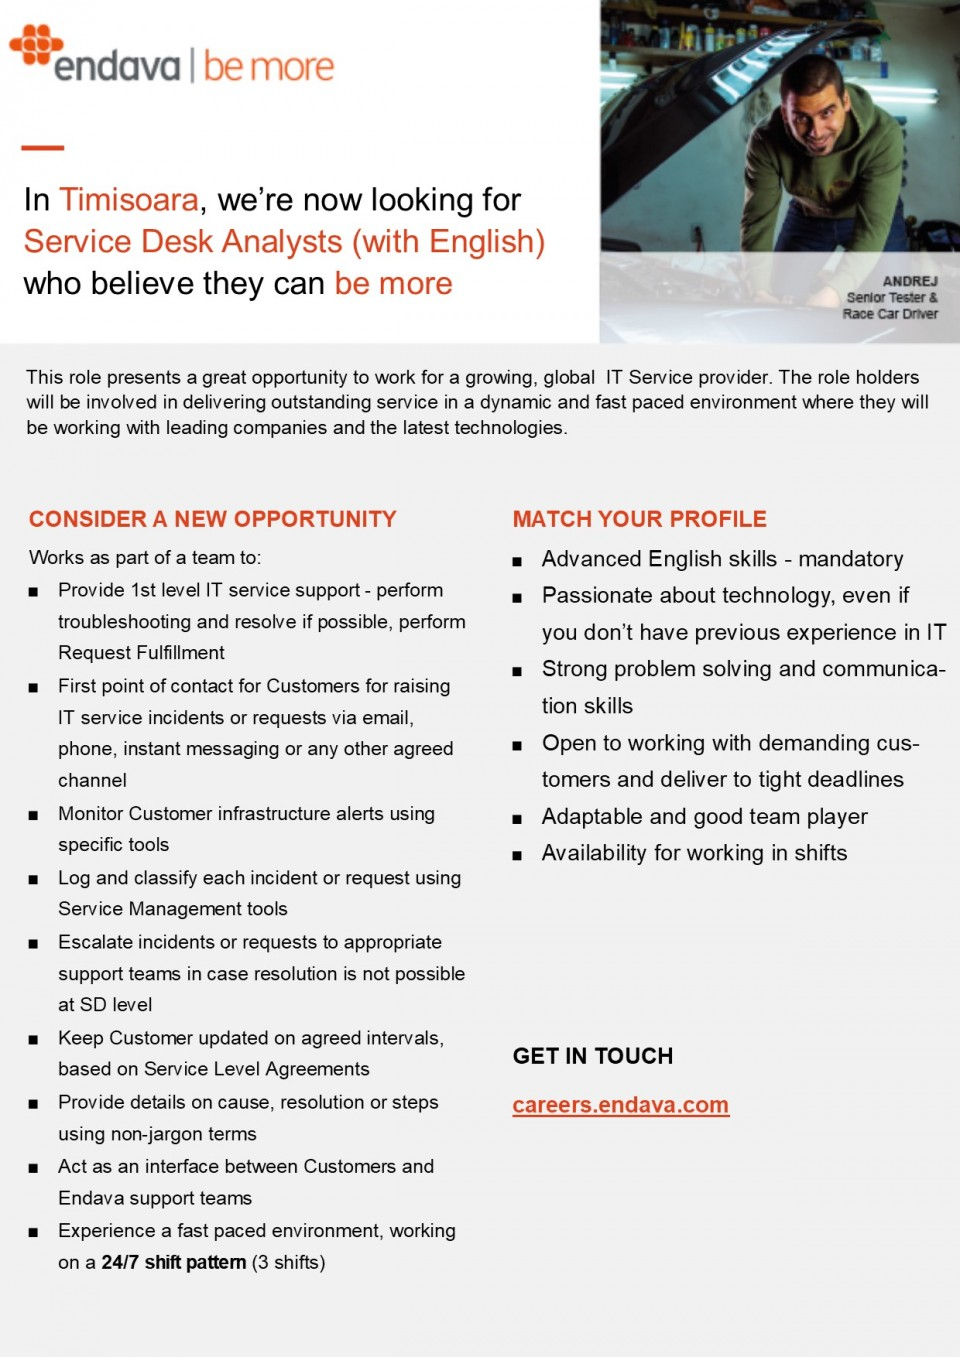 � Advanced English skills - mandatory � Passionate about technology, even if you don't have previous experience in IT � Strong problem solving and communication skills � Open to working with demanding customers and deliver to tight deadlines � Adaptable and good team player � Availability for working in shifts � Provide 1st level IT service support - perform troubleshooting and resolve if possible, perform Request Fulfillment � First point of contact for Customers for raising IT service incidents or requests via email, phone, instant messaging or any other agreed channel � Monitor Customer infrastructure alerts using specific tools � Log and classify each incident or request using Service Management tools � Escalate incidents or requests to appropriate support teams in case resolution is not possible at SD level � Keep Customer updated on agreed intervals, based on Service Level Agreements � Provide details on cause, resolution or steps using non-jargon terms � Act as an interface between Customers and Endava support teams � Experience a fast paced environment, working on a 24/7 shift pattern (3 shifts) Endava is a well-established IT Services company, with over 1000 staff operating from our headquarters in London and offices in the UK (London, Oxford), USA (New York), Romania (Bucharest, Cluj-Napoca, Iasi) and Moldova (Chisinau). We design, implement and manage business-critical systems and digital services for the financial services, telecommunications, media & entertainment and professional services sectors. Endava is a fast growing organisation where you will find an international environment and rewarding opportunities. You will be involved in challenging projects for some of the world's leading companies and use proven technology practice. We always aim to attract the most talented IT professionals as well as experienced business specialists. We foster an environment of learning and sharing, encouraging our staff to develop relevant skills and increase perform